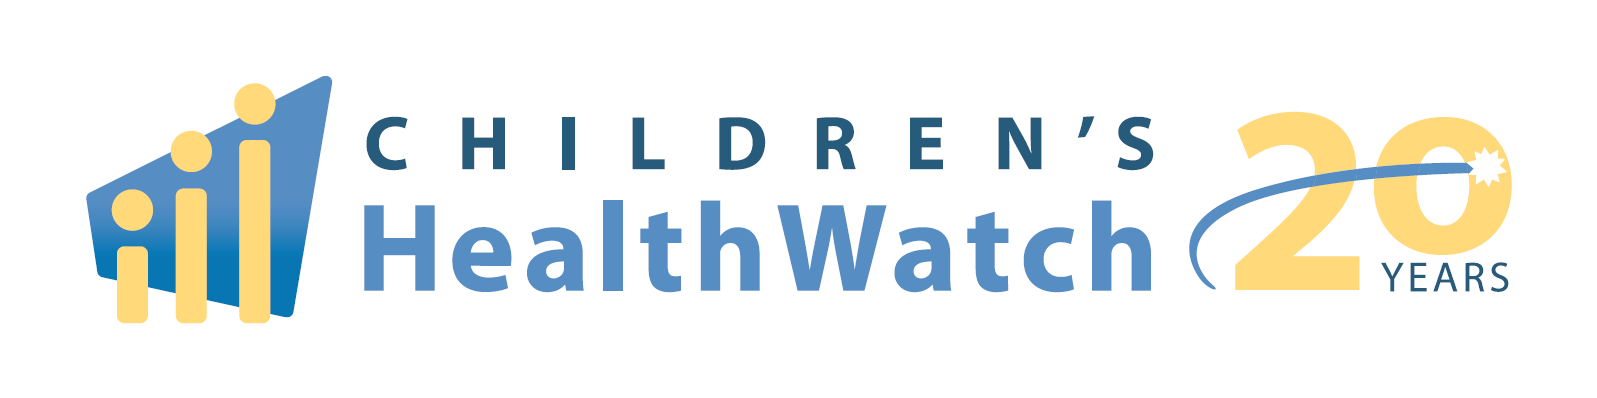 Children's Health Watch 20th Anniversary